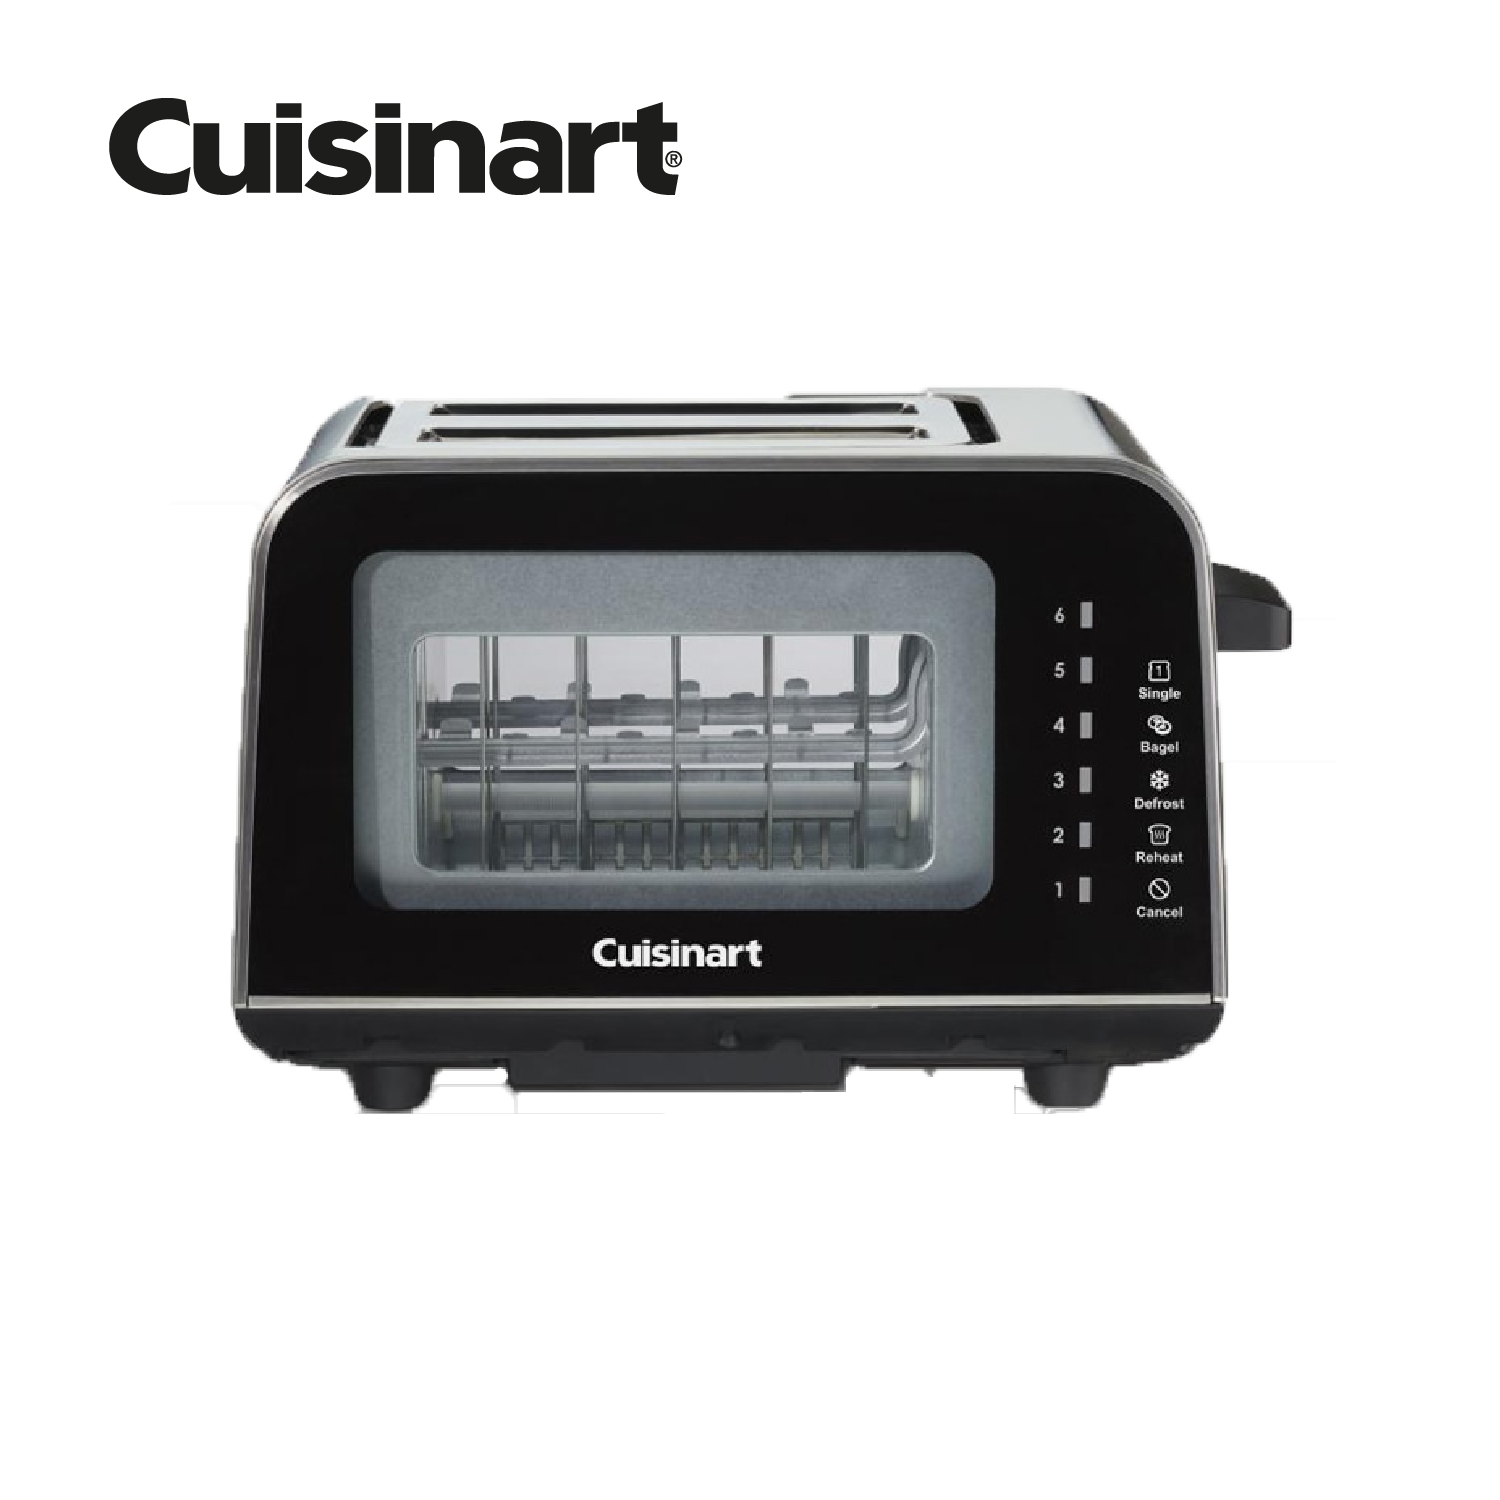 Cuisinart ViewPro™ Glass 2 Slice Toaster